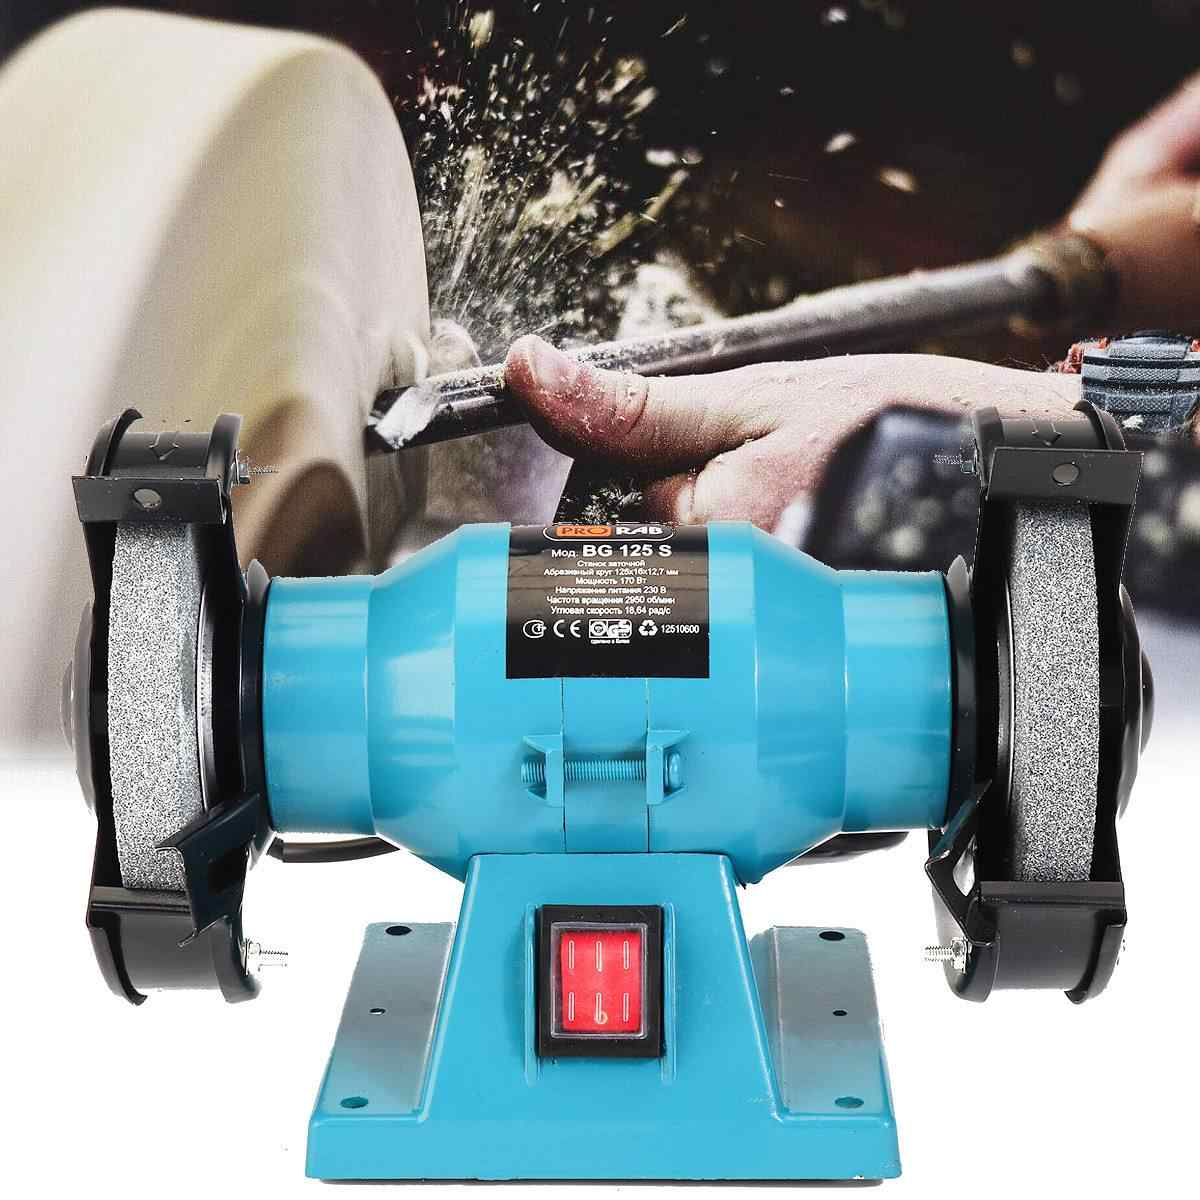 170W 220V Professional Electric Knife Sharpener BenchGrinder Polishing Machine Tools Multifunction Power Tools Home Kitchen